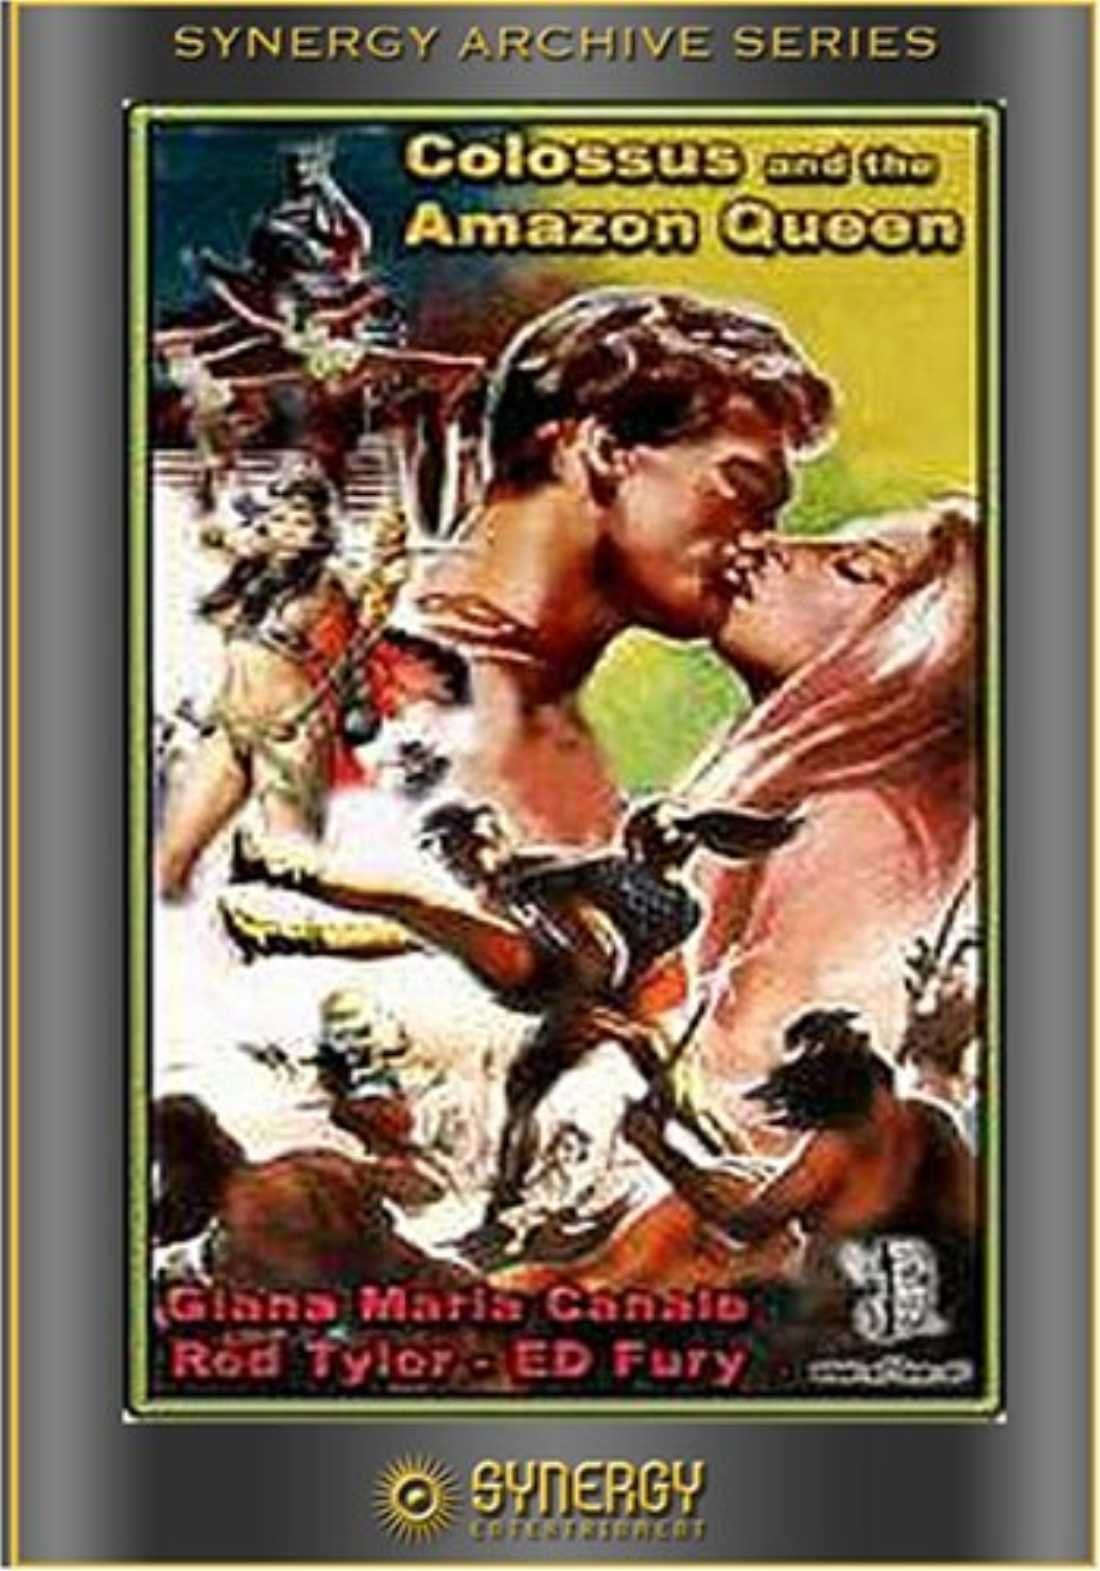 Colossus and the Amazon Queen screens tonight at 10pm at The Grotto.